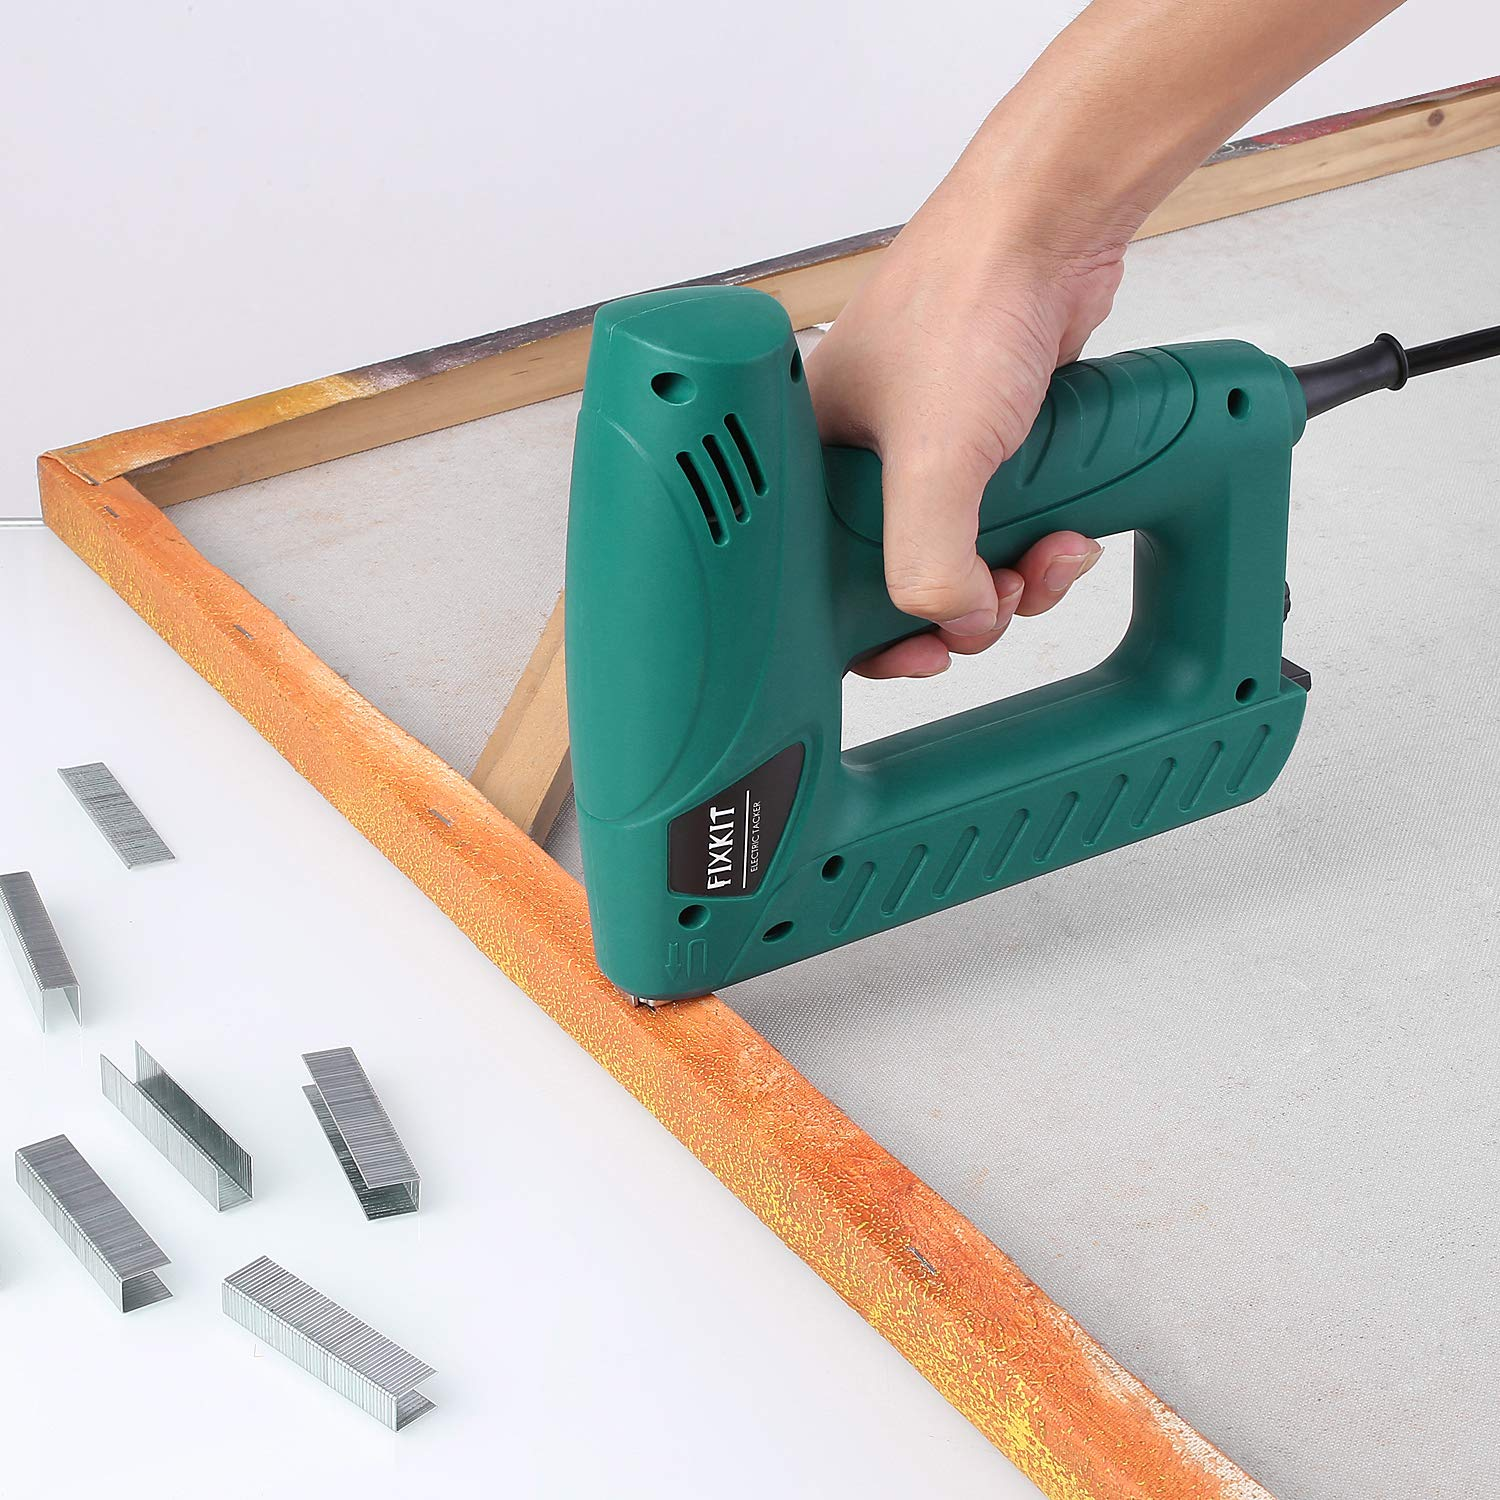 FIXKIT Electric Staple/Brad Nail Gun Hand Tacker Flooring Framing Nailers Kit, Suit For Upholstery, Fixing Material, Decoration, Carpentry, Furniture by FIXKIT (Image #6)